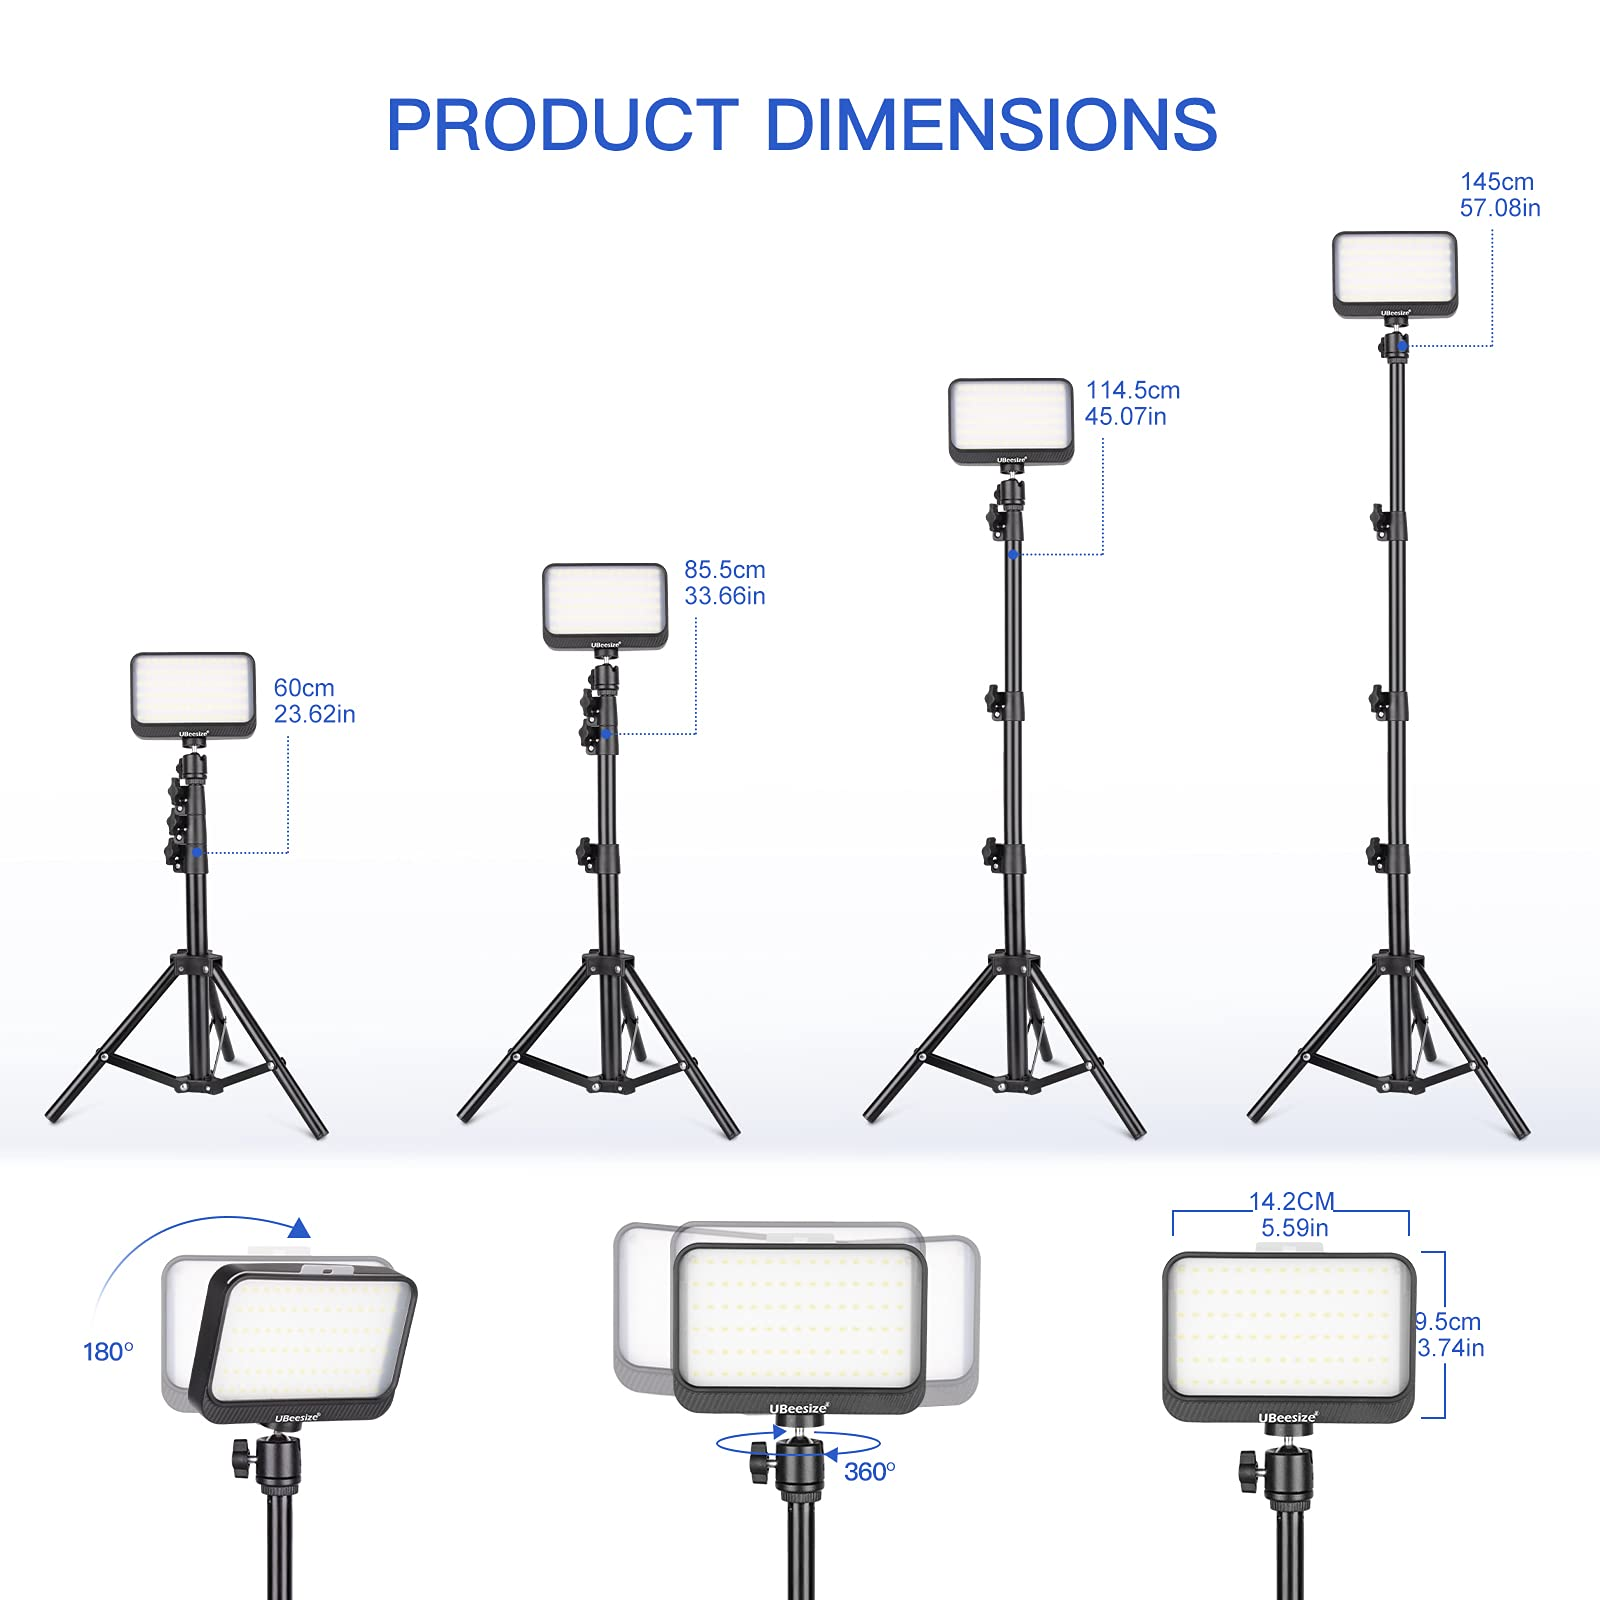 UBeesize LED Video Light Kit, 2Pcs Dimmable Continuous Portable Photography Lighting with Adjustable Tripod Stand & 5 Color Filters for Tabletop/Low-Angle Shooting, for Zoom, Game Streaming, YouTube